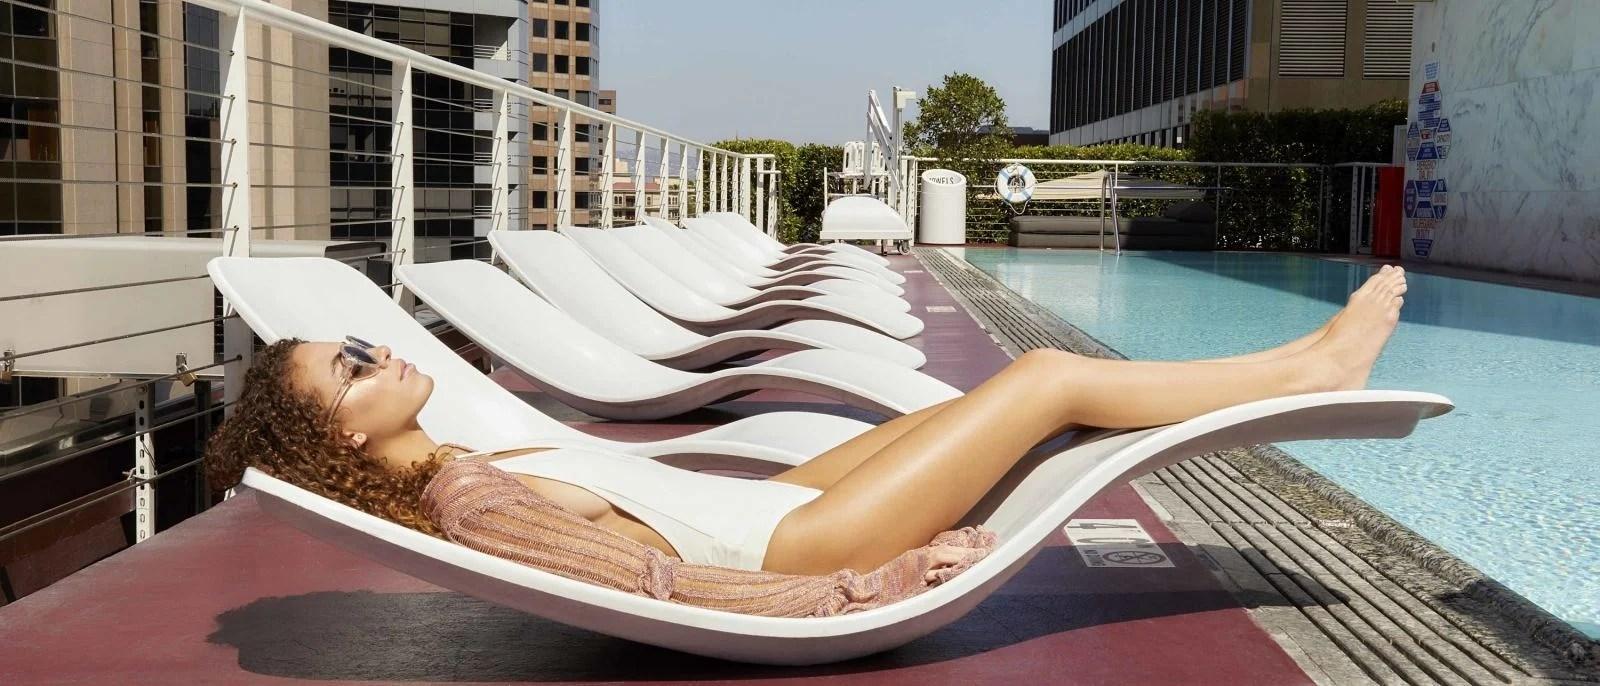 what are pool chairs made out of posture corrector desk chair the hottest hotel pools in los angeles discover standard downtown la